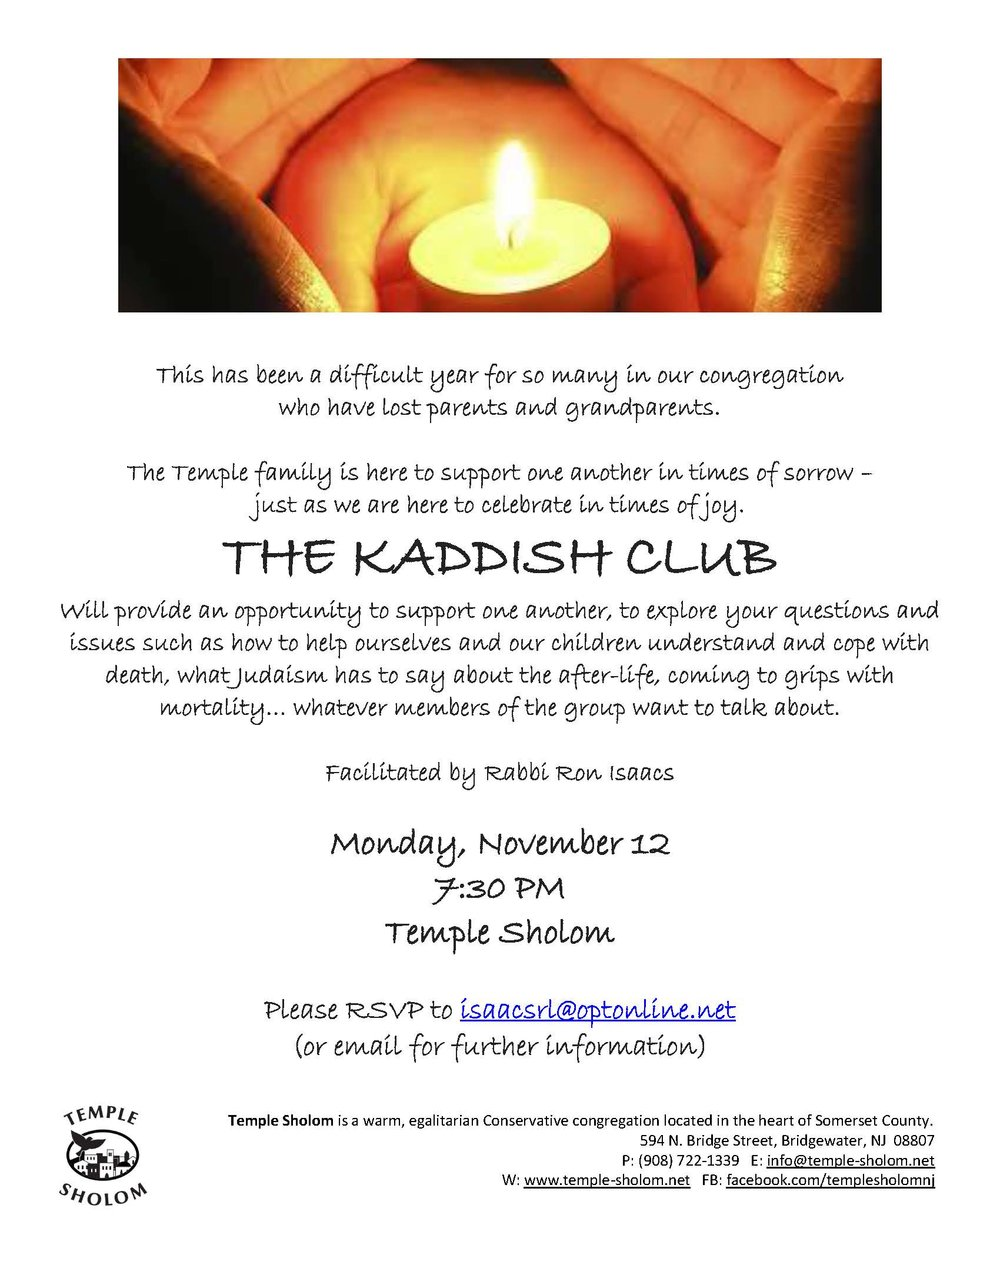 kaddish club revised 9.26.18.jpg